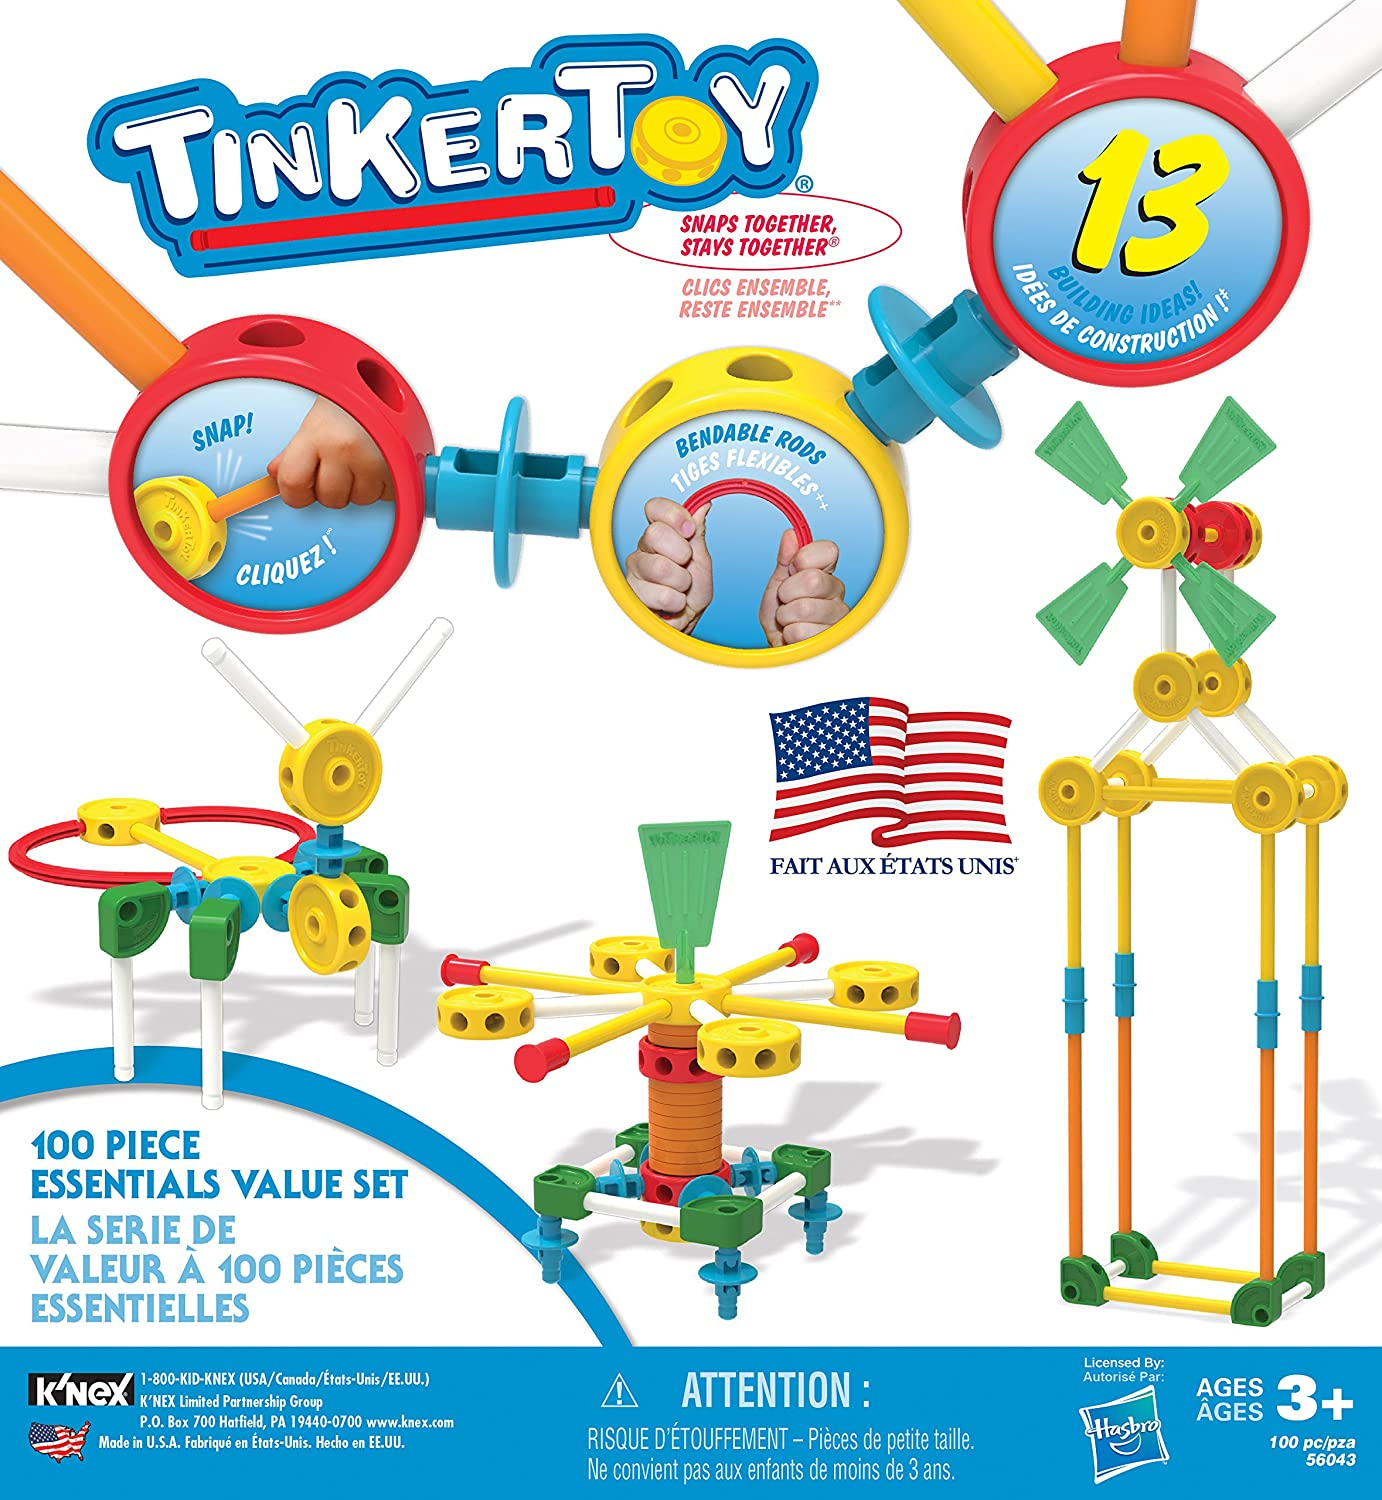 Amazon TINKERTOY ‒ 100 Piece Essentials Value Set ‒ Ages 3